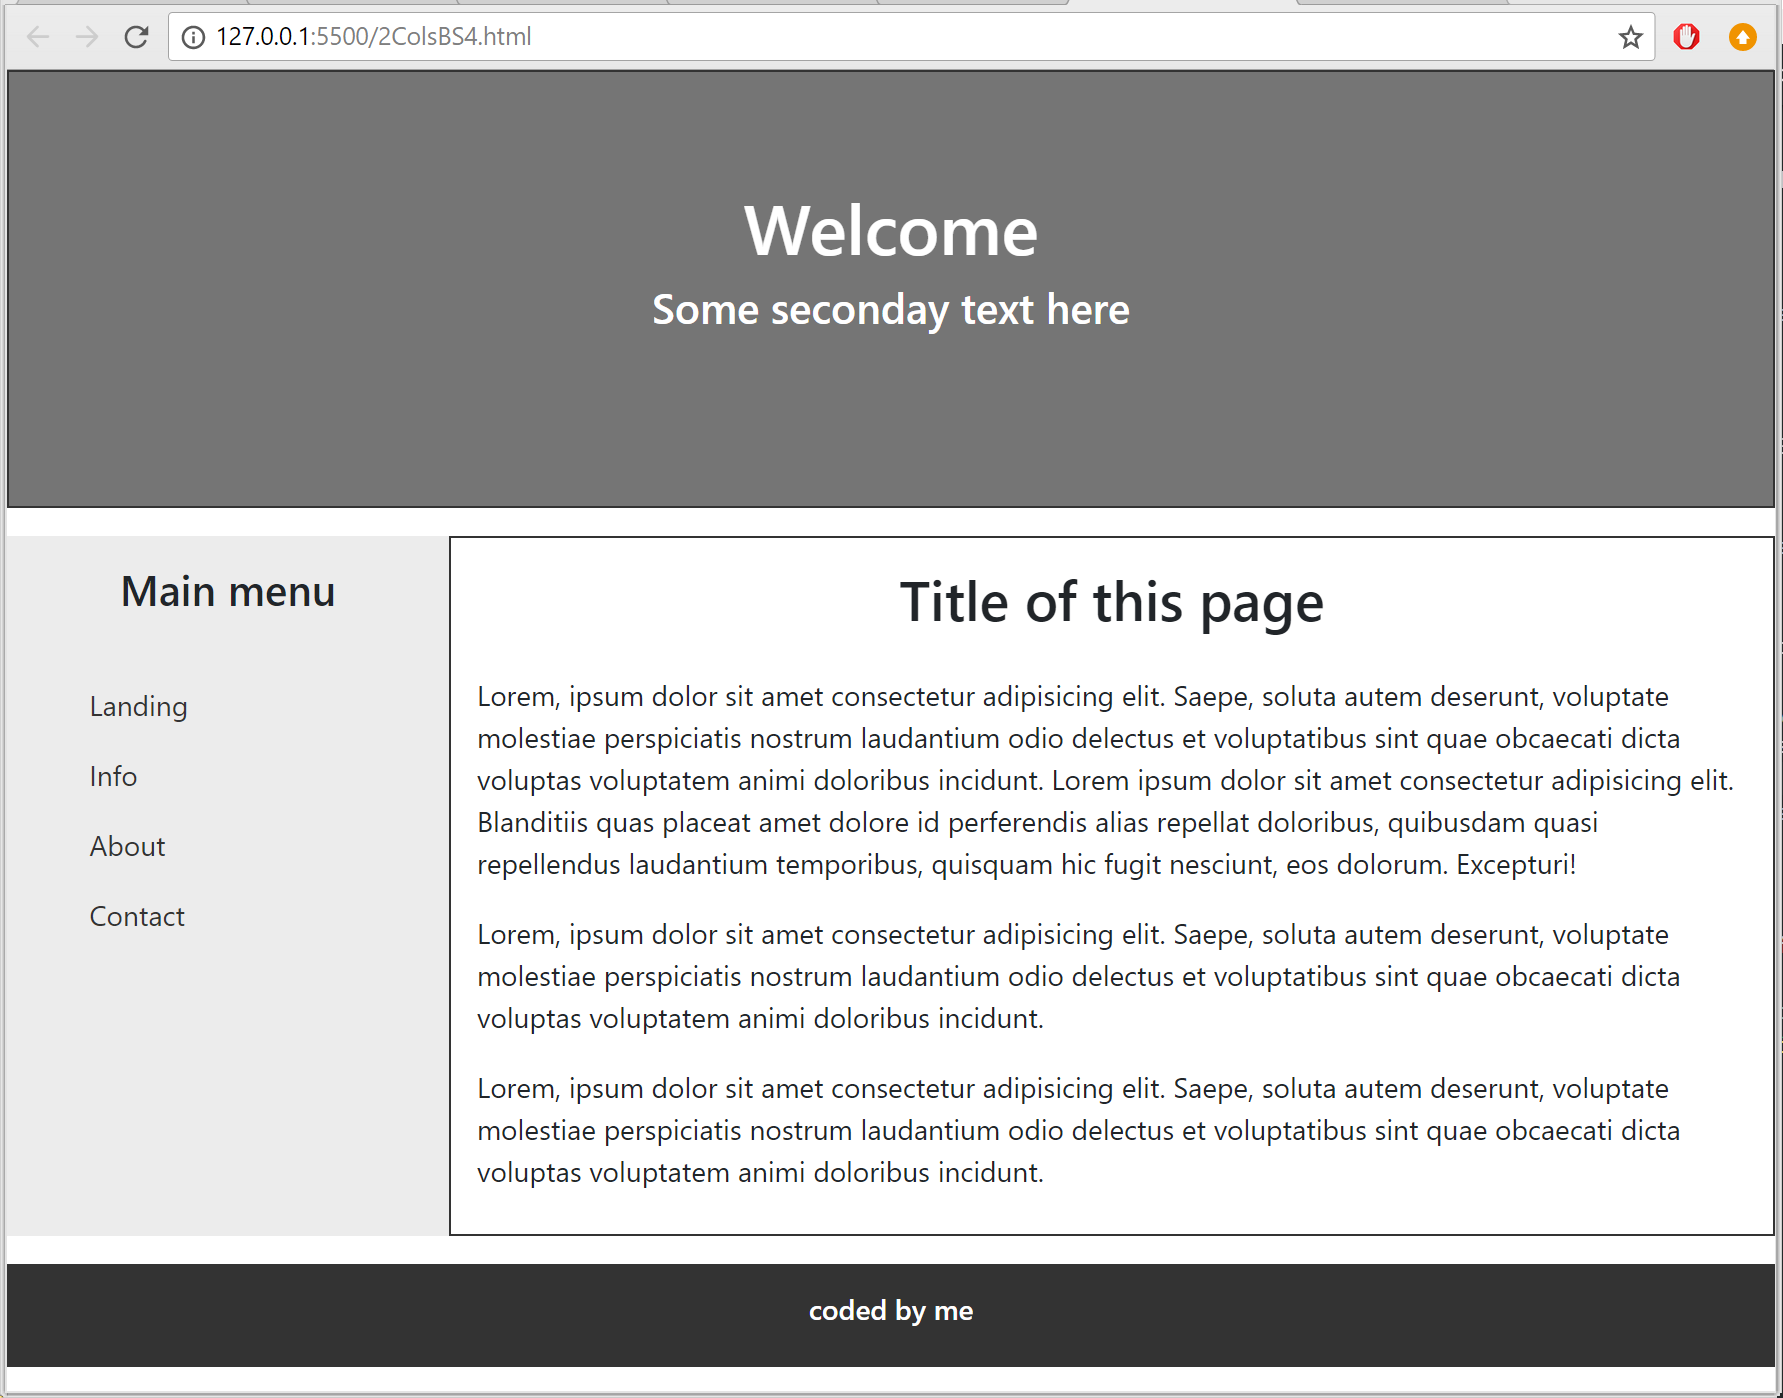 template built with Bootstrap4